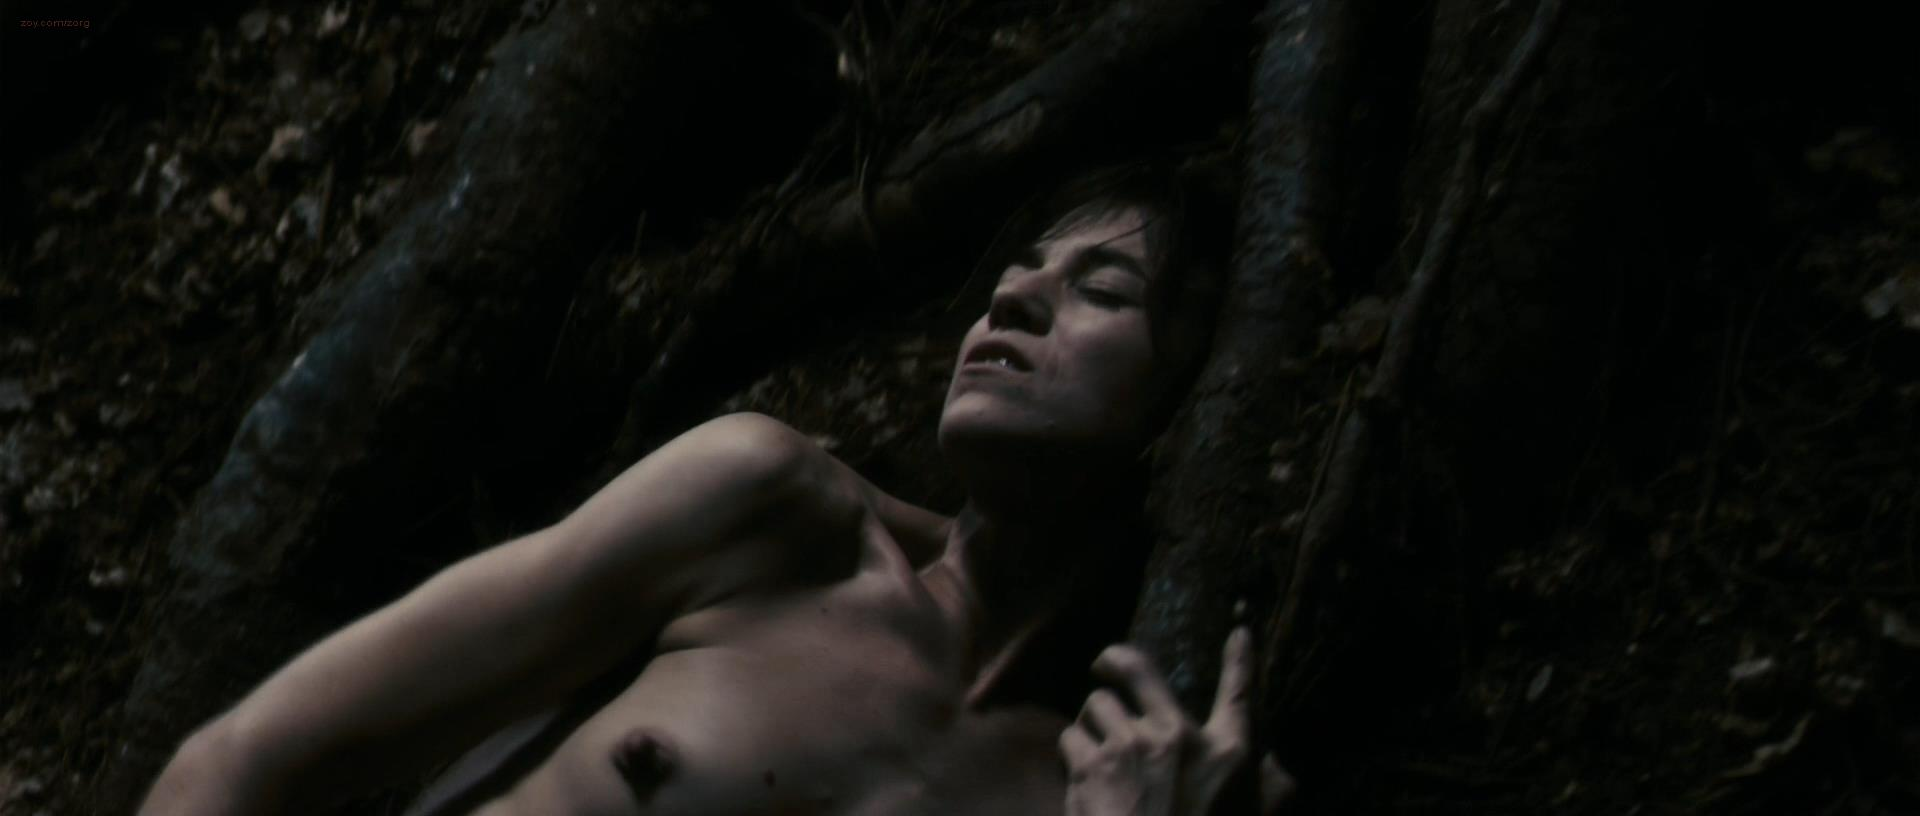 Antichrist Porn Scenes charlotte gainsbourg nude real sex full frontal and nude